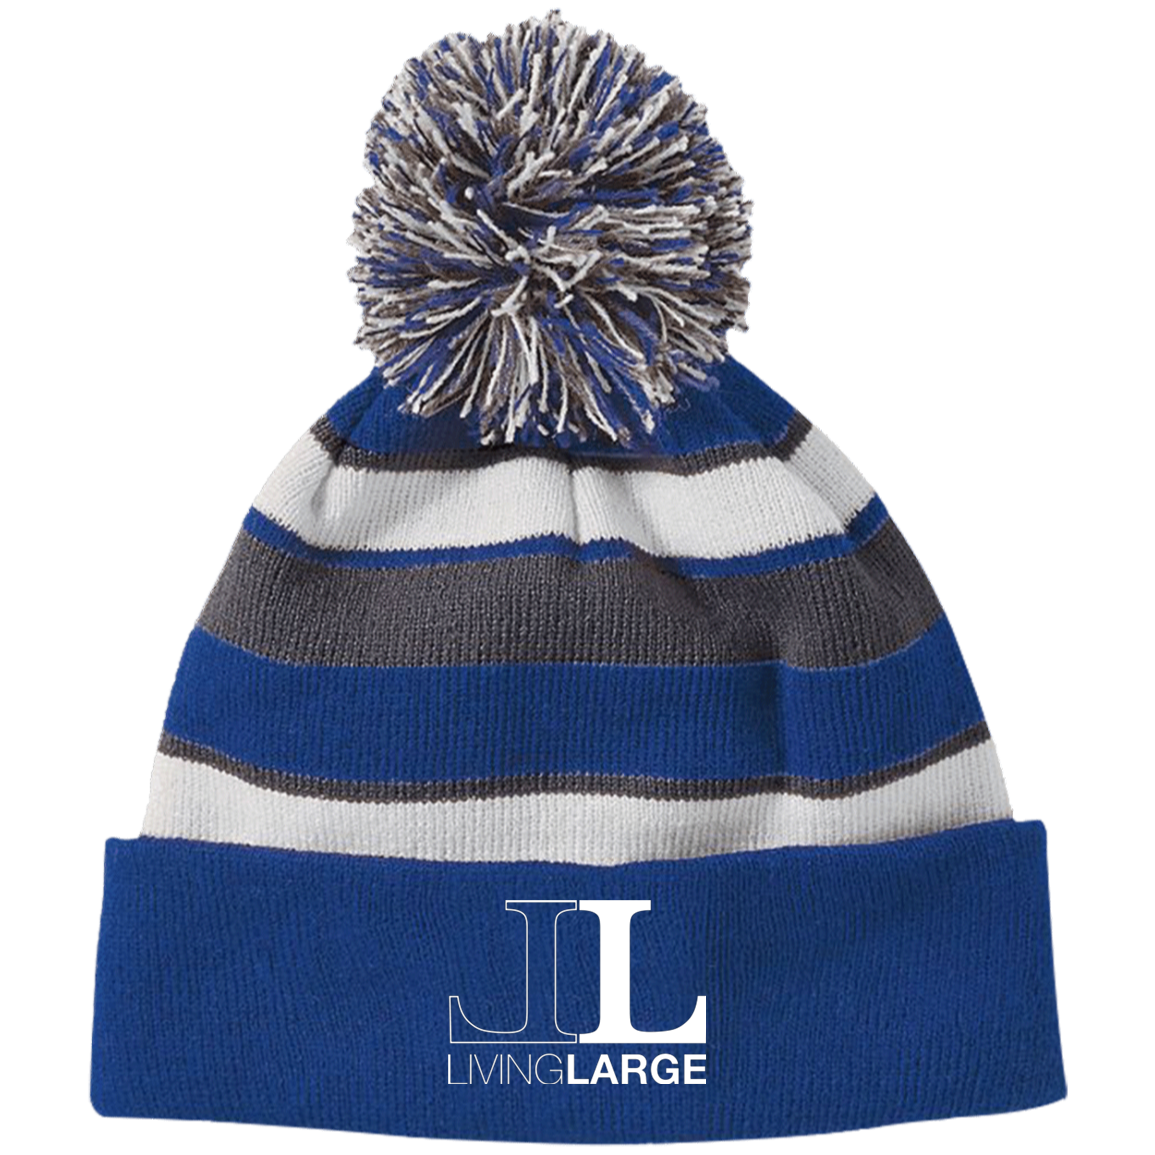 Living Large - Striped Beanie with Pom